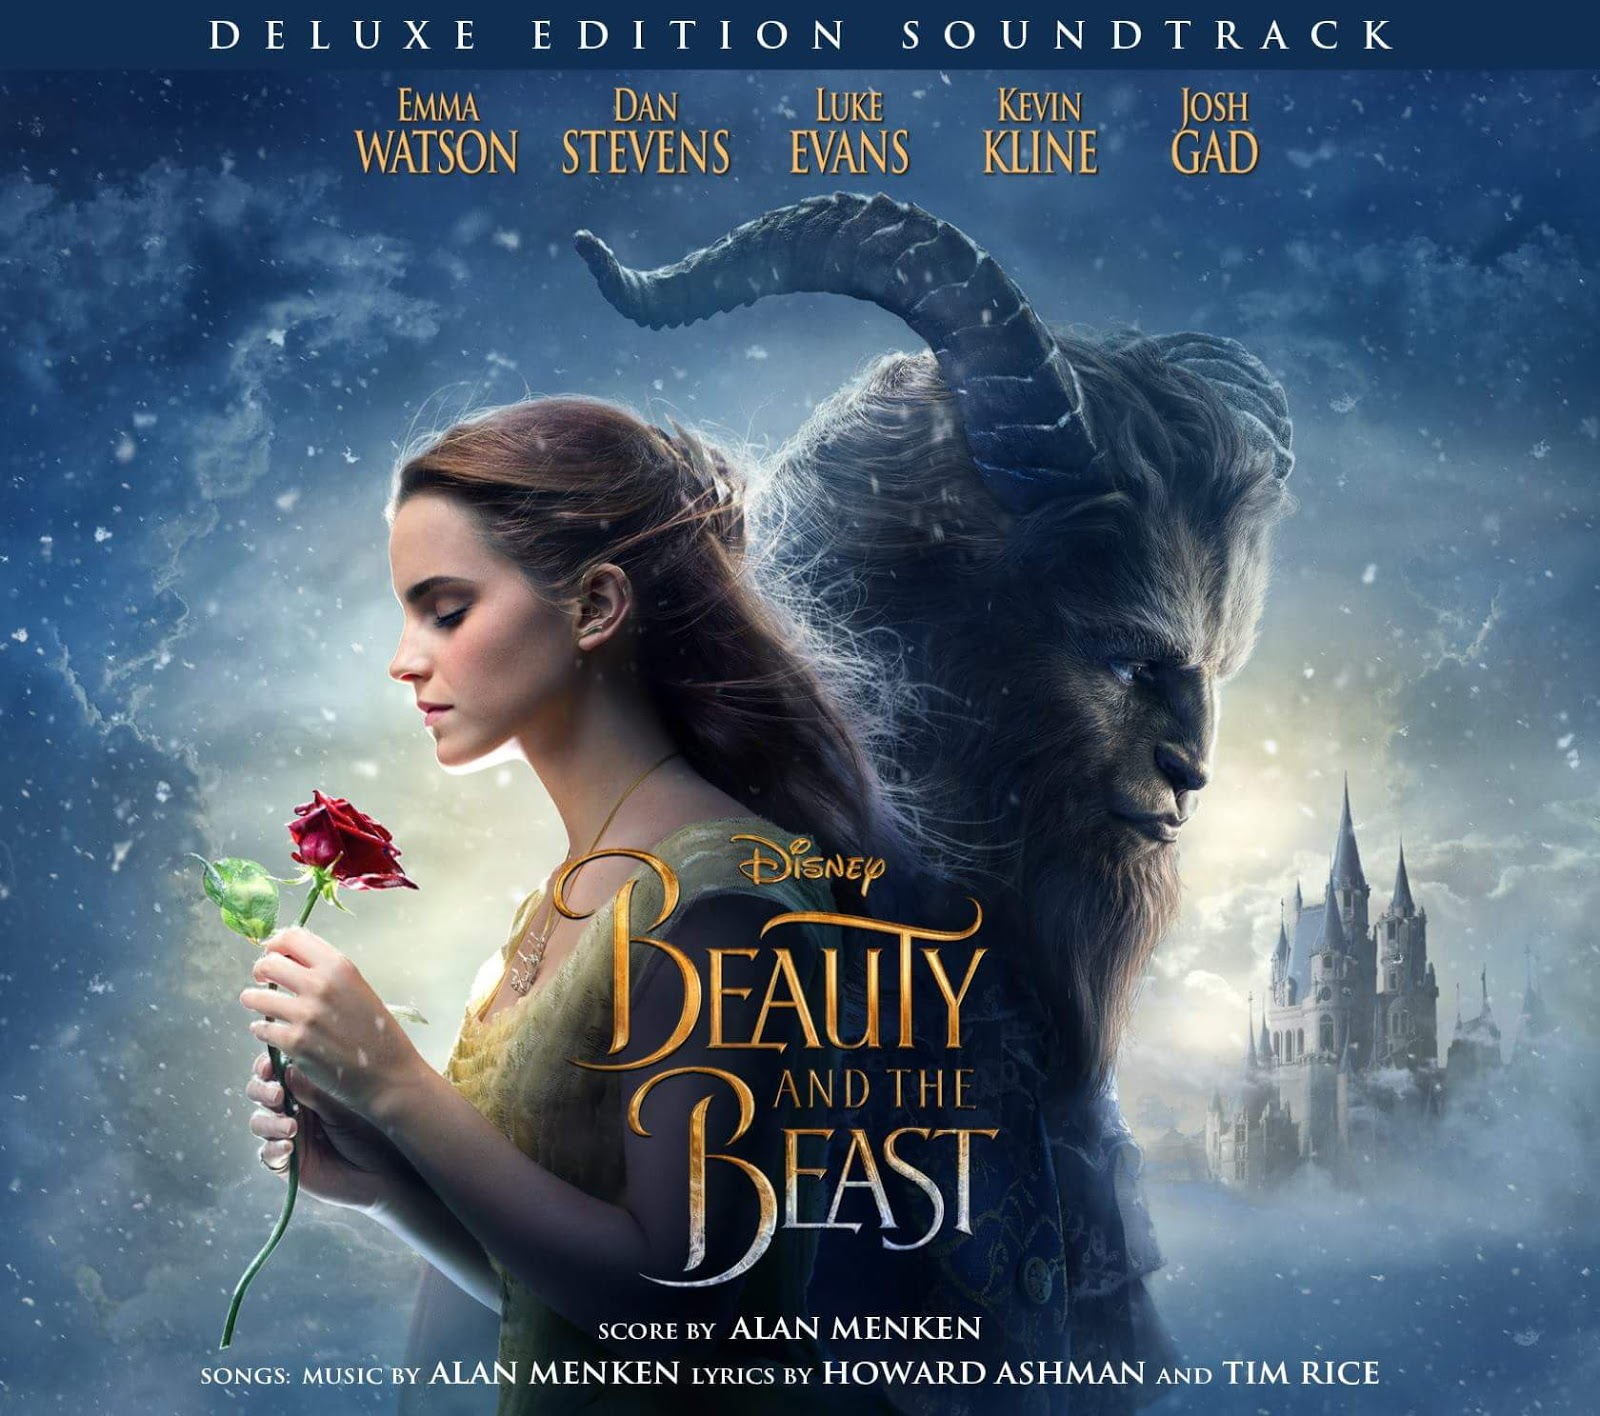 beauty and the beast celine dion ariana grande pelicula cine cancion original